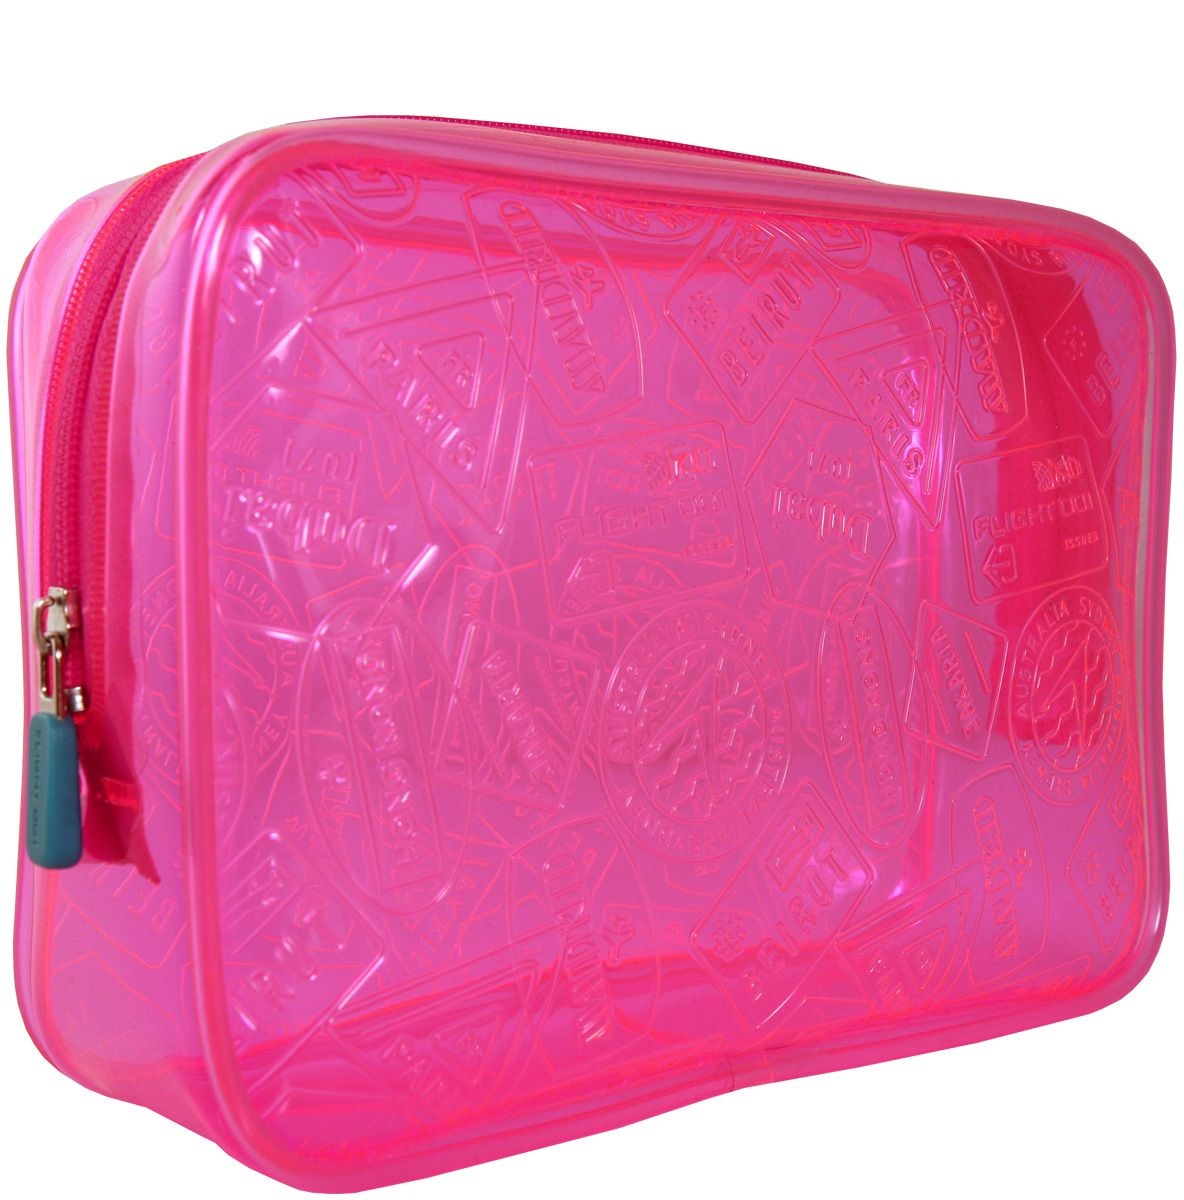 $14.00 F1 X-RAY QUART BAG PINK  7.125in X 5in X 2in